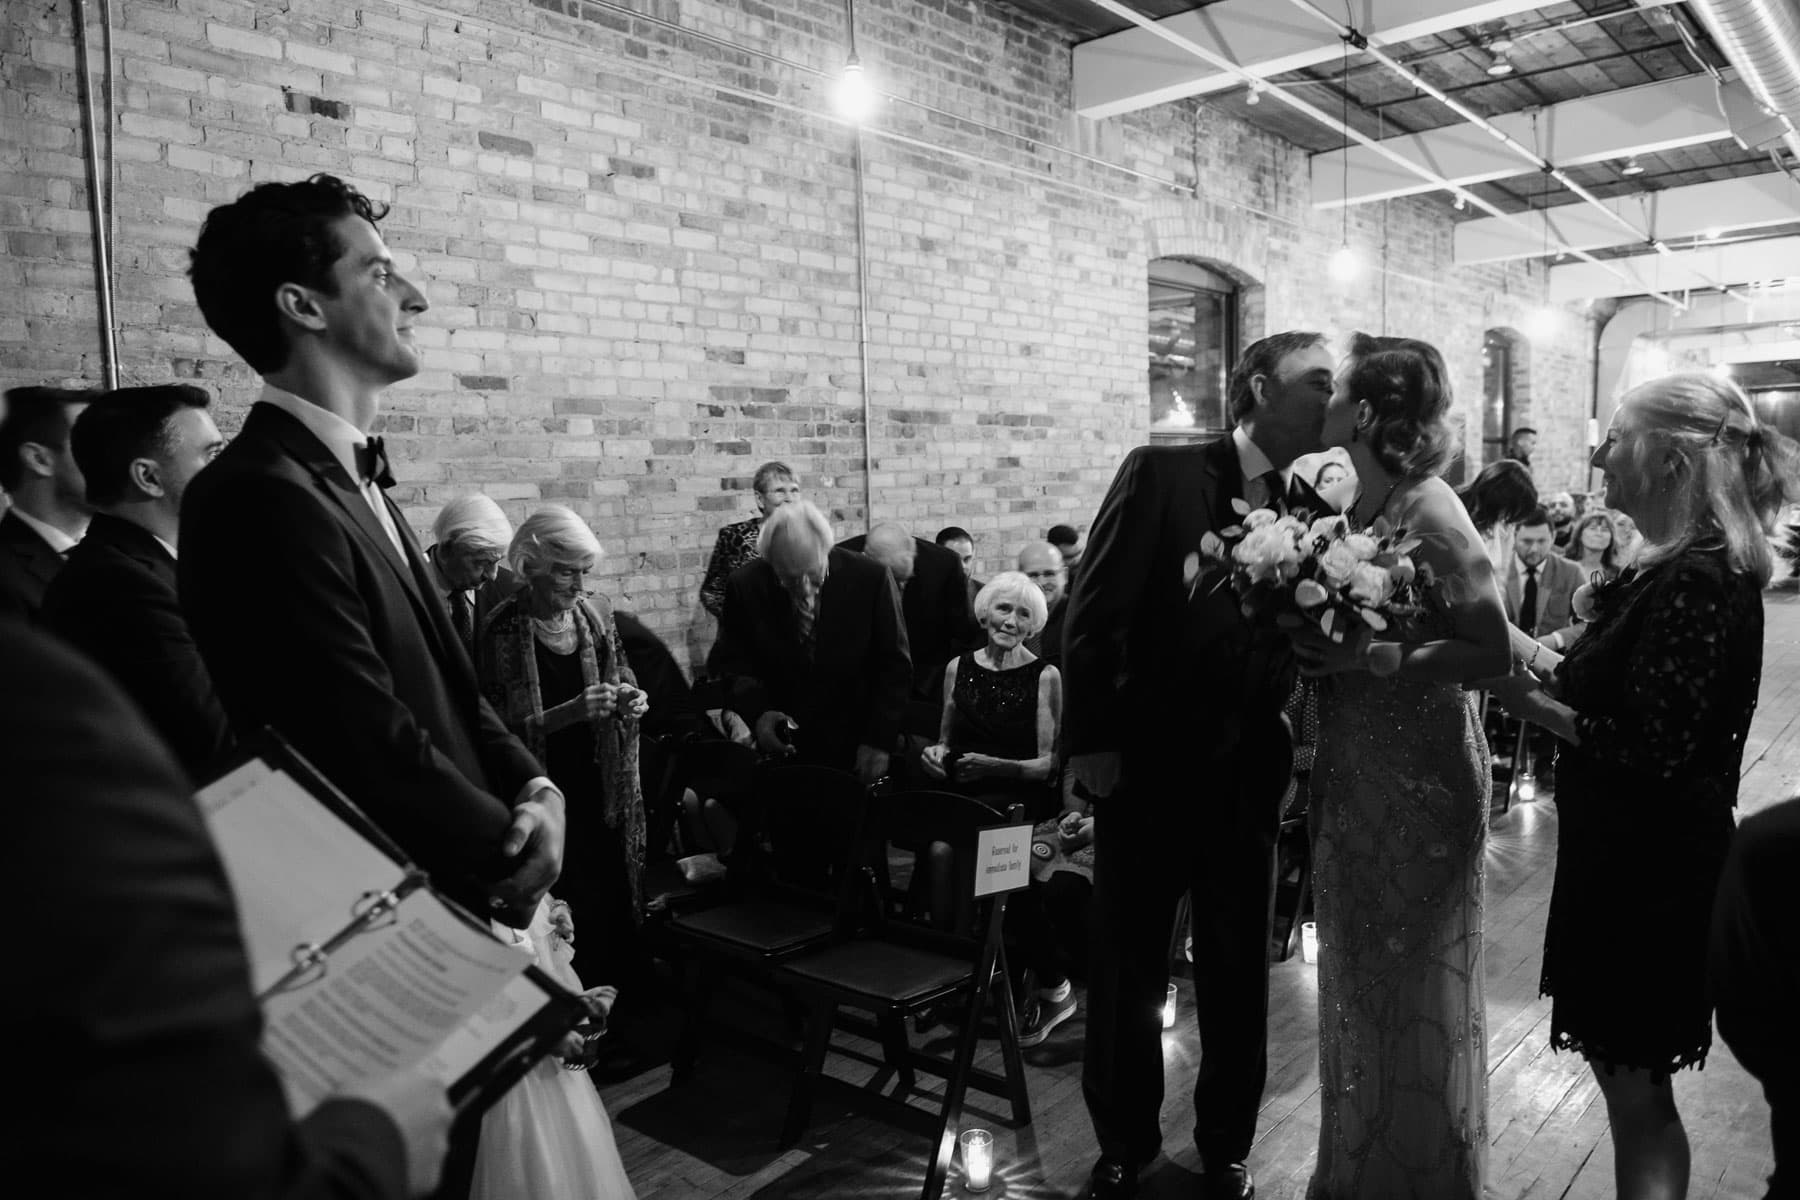 Groom watches as bride kisses father just before the ceremony at The Burroughes building wedding.